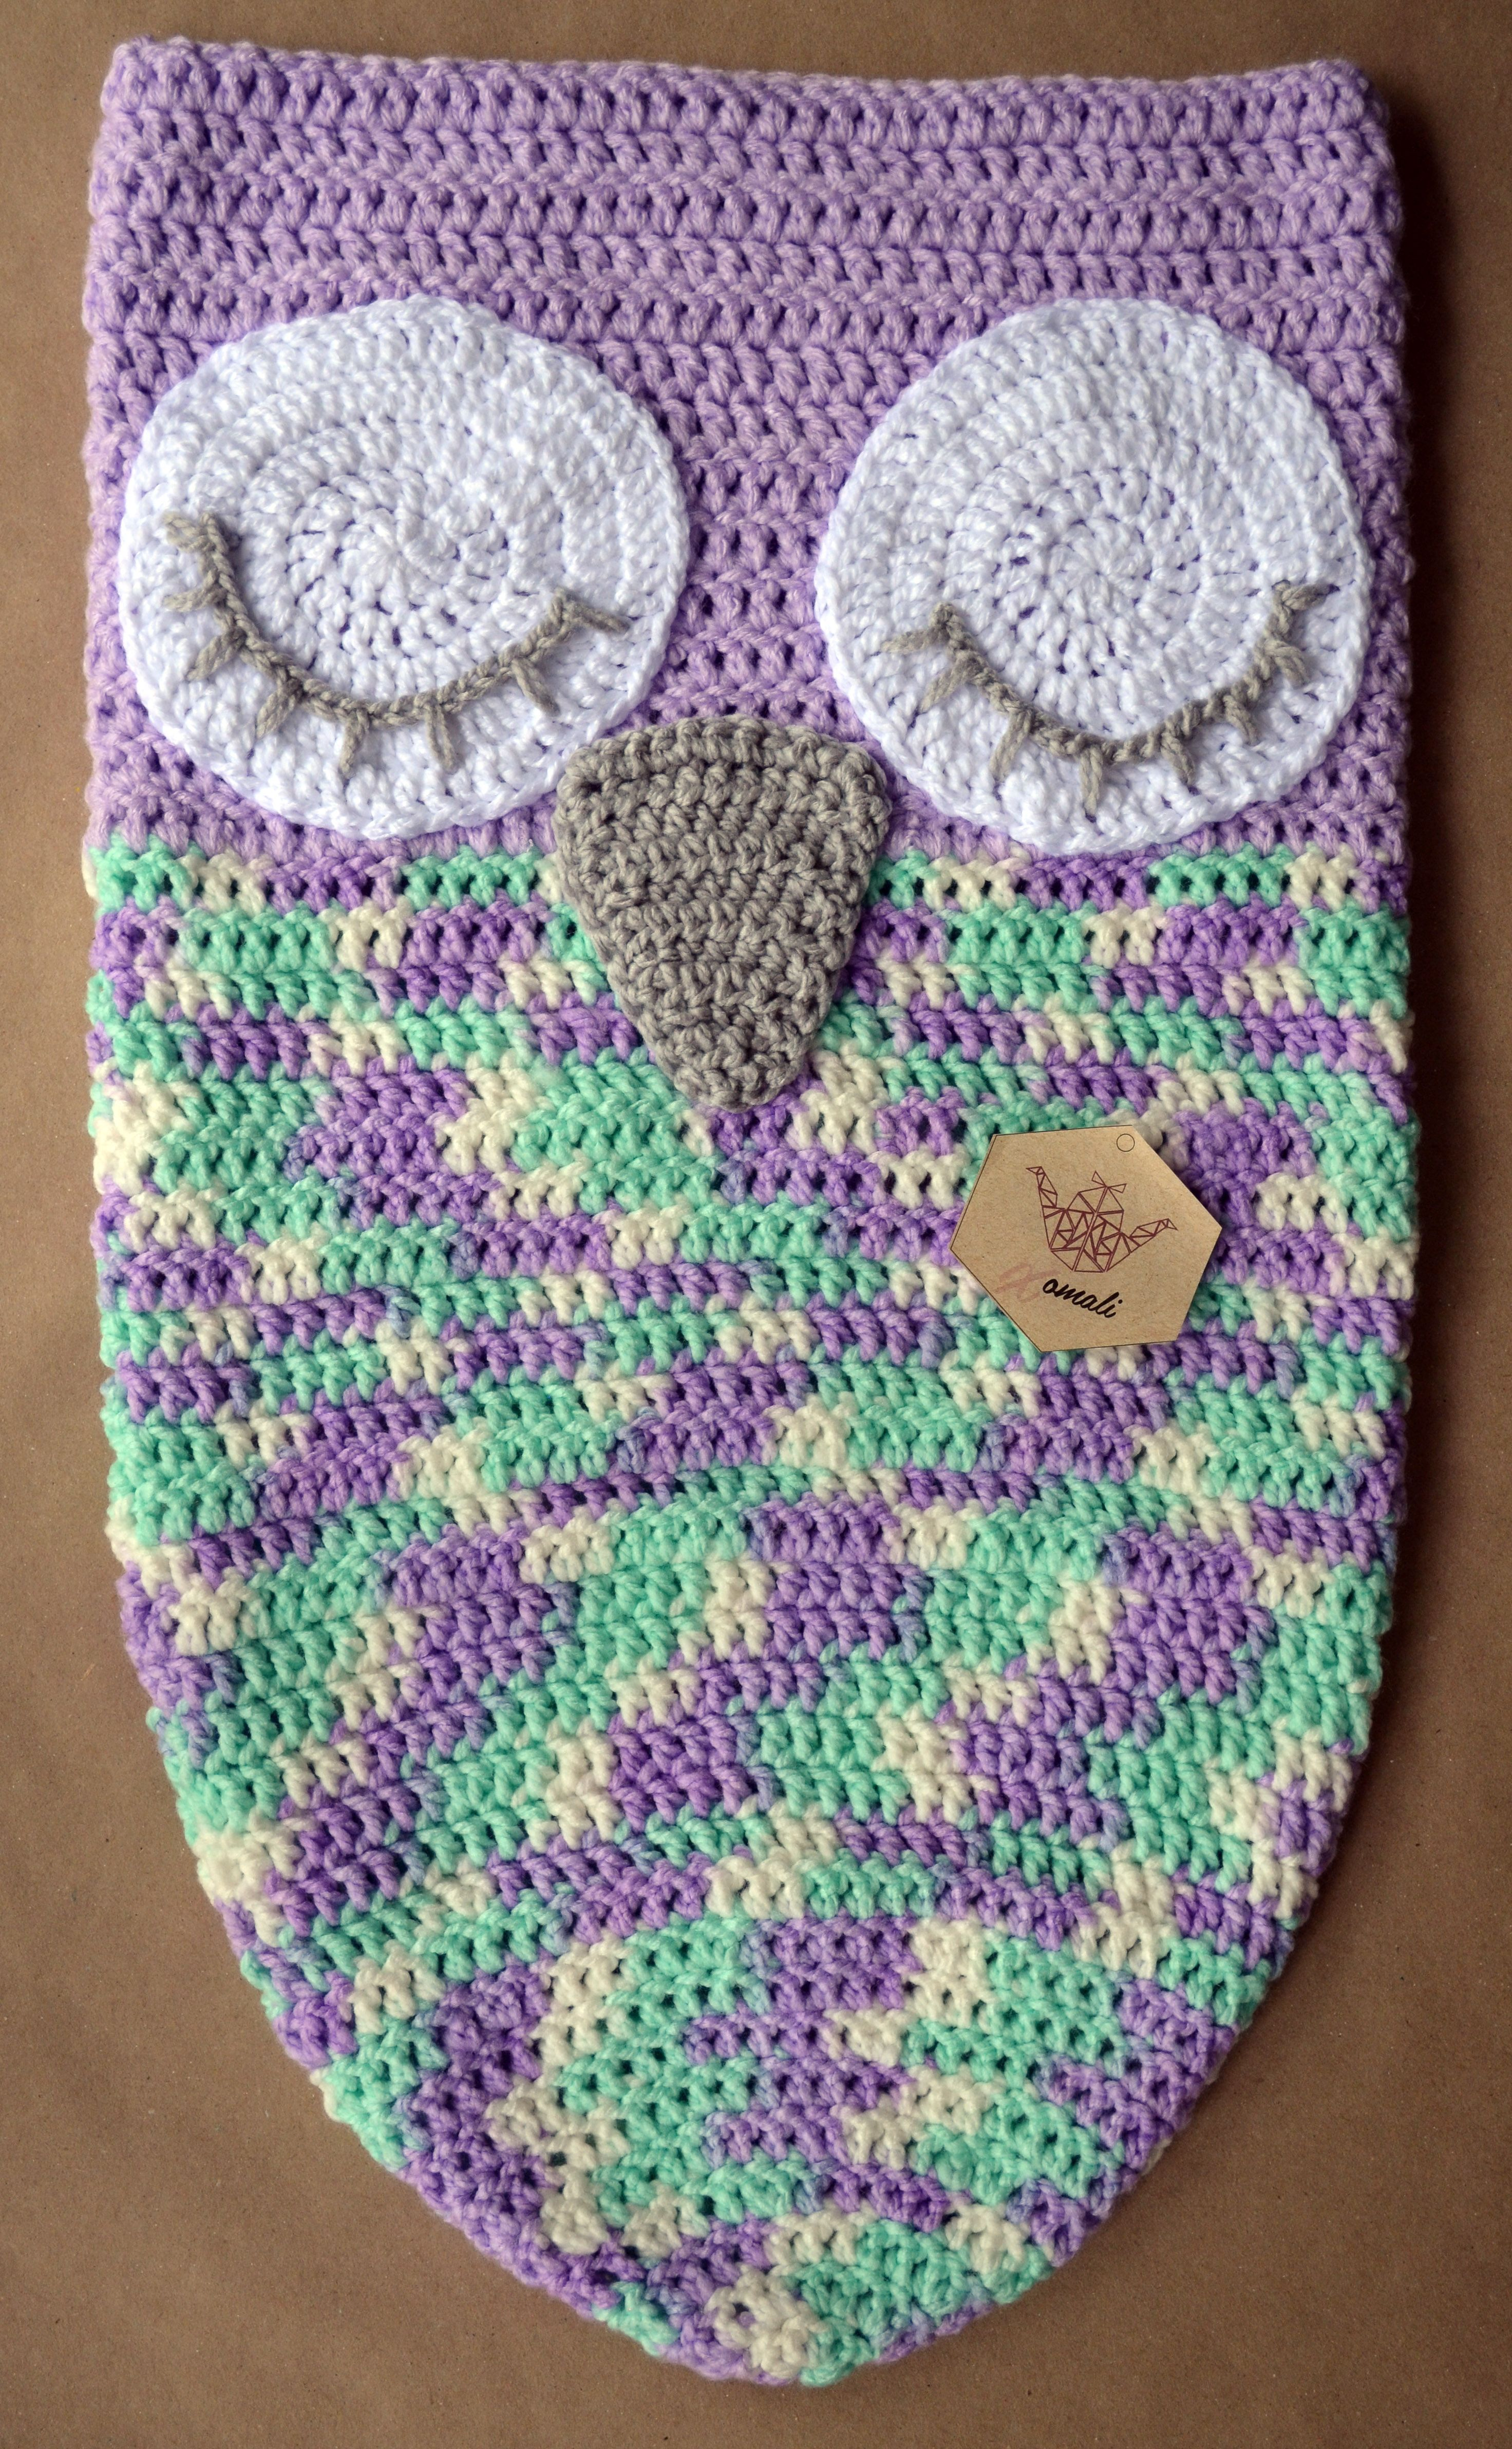 Cottage snuggle sack and hat crochet baby baby cocoon and sacks - Capullo Para Beb Tejido A Crochet Baby Cocoon